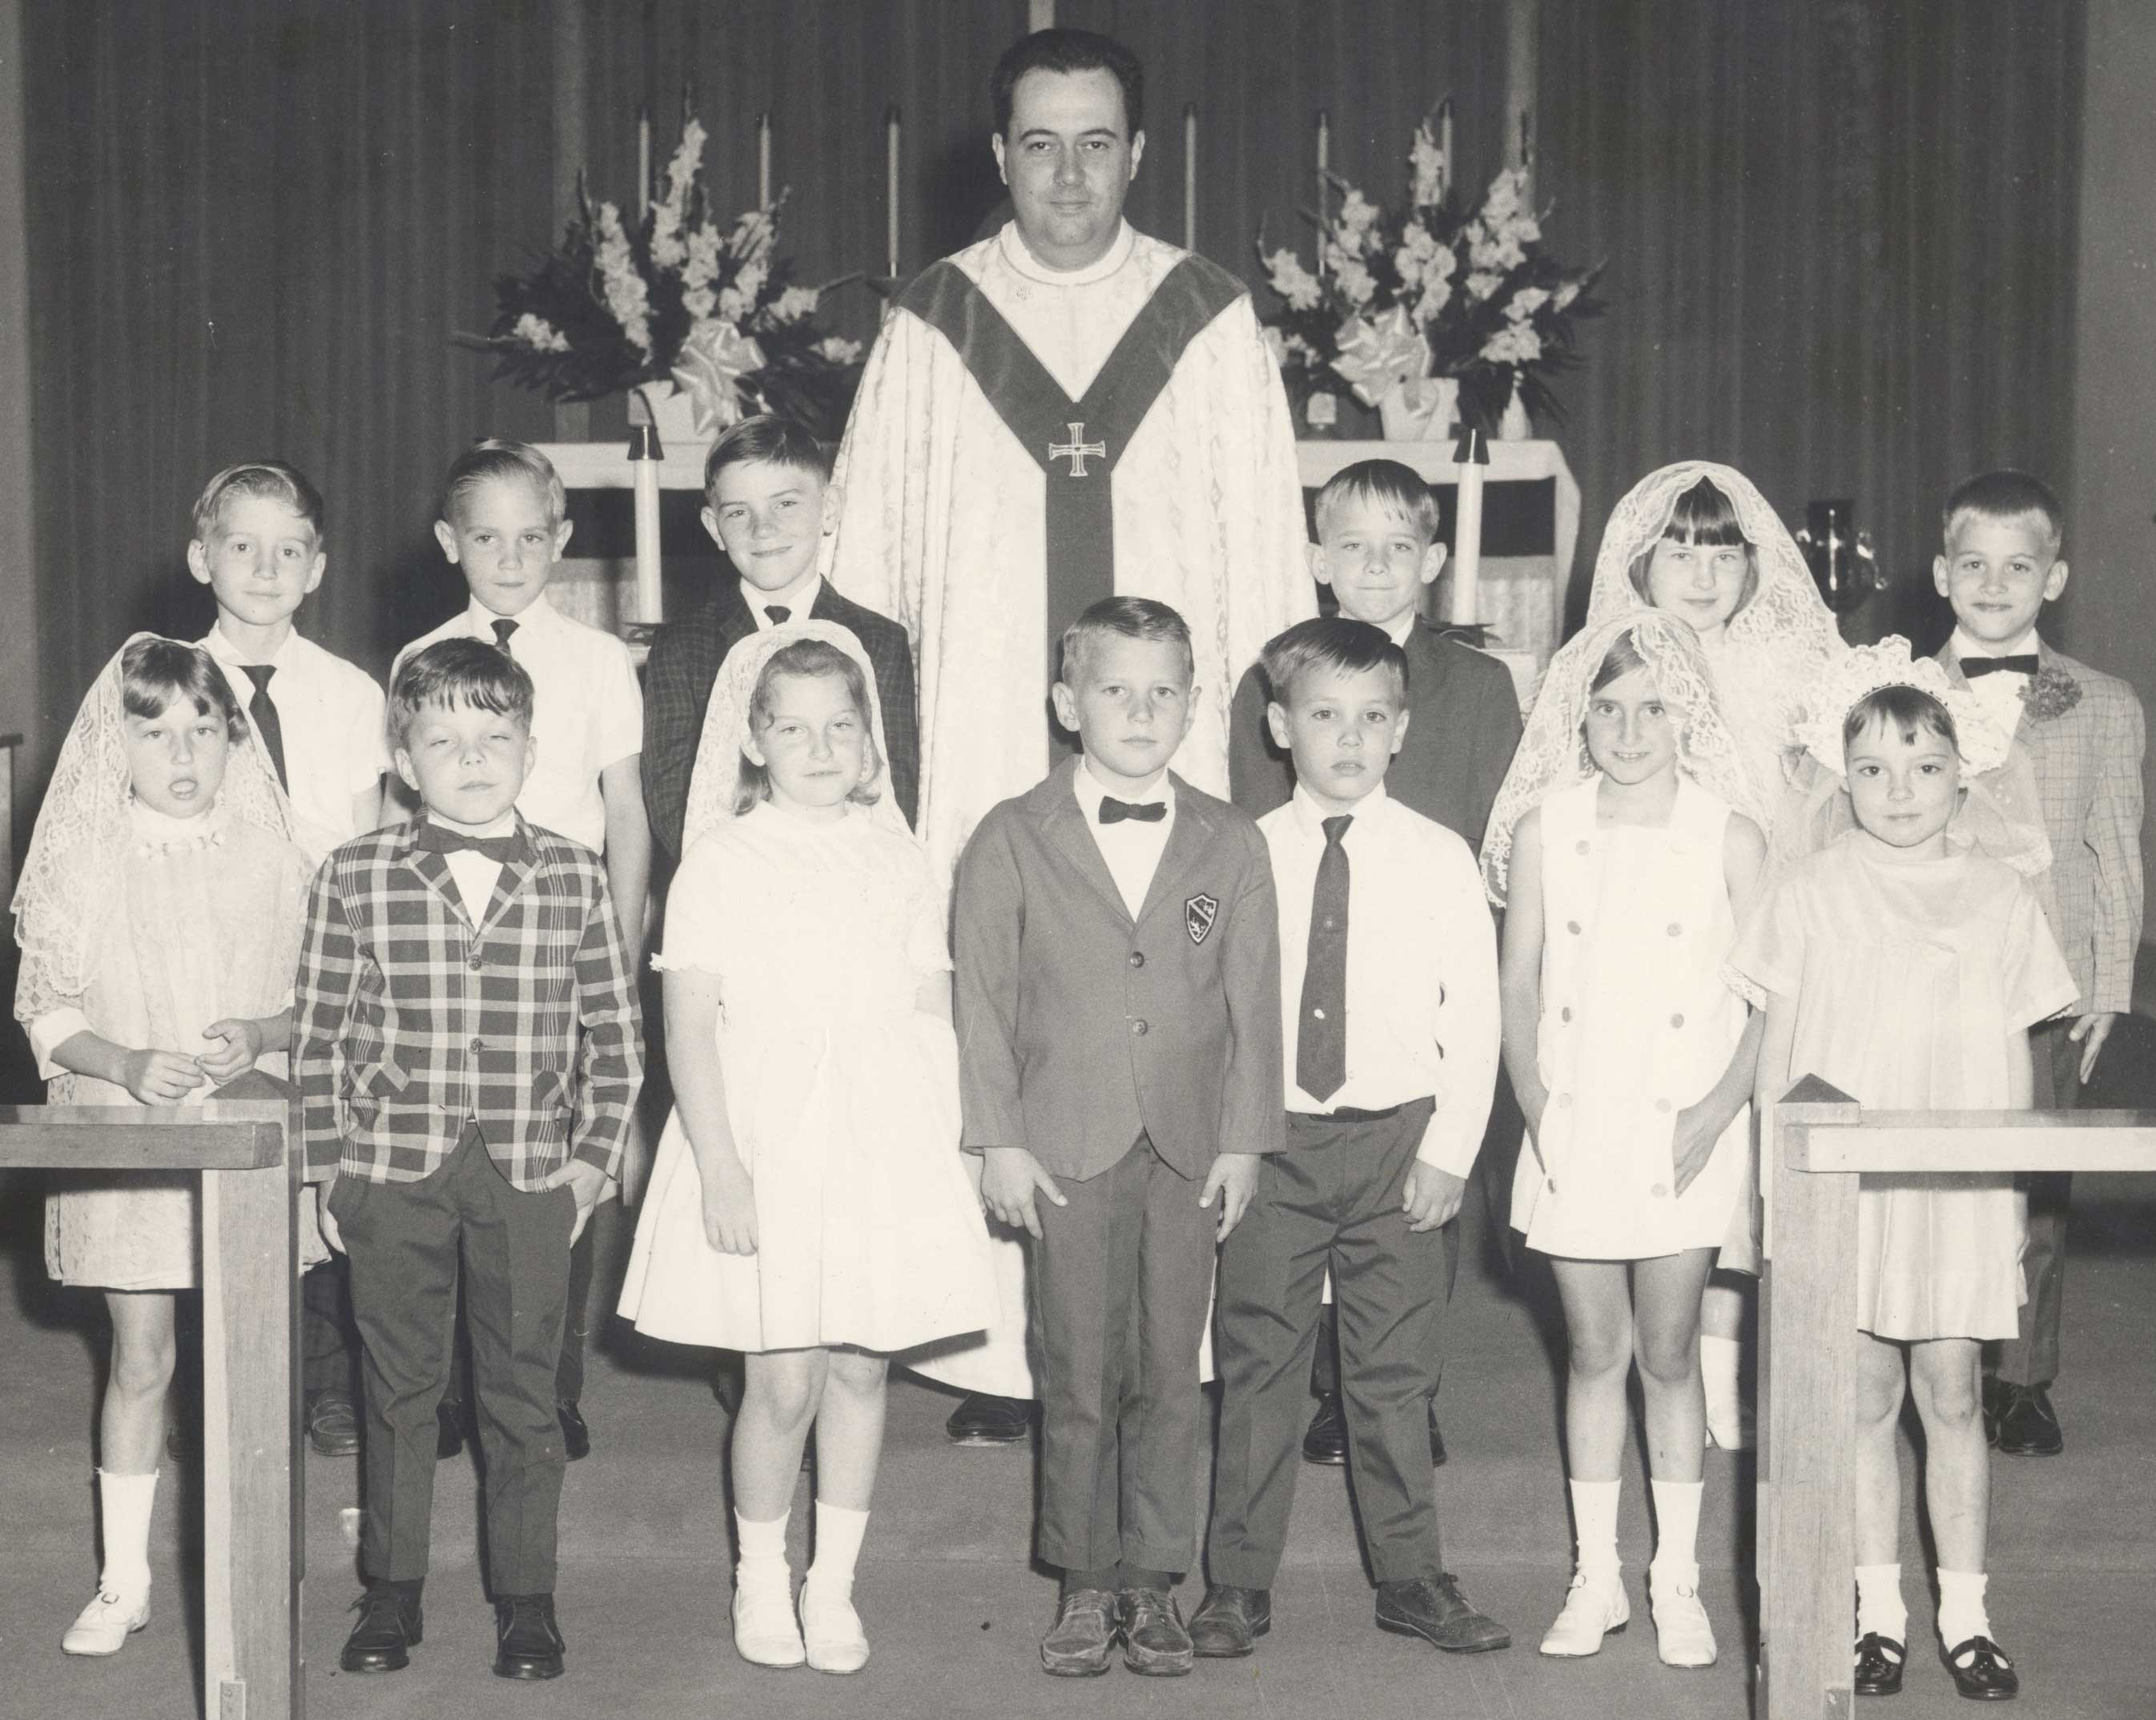 "FIRST COMMUNION—(circa 1968) Msgr. William ""Bill"" Stanton is pictured with a group of First Communicants in Sacred Heart Parish, Caruthersville, MO, where he served at pastor from 1967-1971. A Founding Priest of the Diocese of Springfield-Cape Girardeau, Msgr. Stanton died Jan. 18, 2017. He was among one of the first priests serving in the ""new"" diocese in southern Missouri, carved out of the Diocese of Kansas City and the Archdiocese of St. Louis in 1956. Then-Father Stanton requested to be incardinated into the Diocese of Springfield-Cape Girardeau from the Archdiocese of St. Louis, and was granted his wish by Cardinal Joseph Ritter in 1958. (The Mirror)"